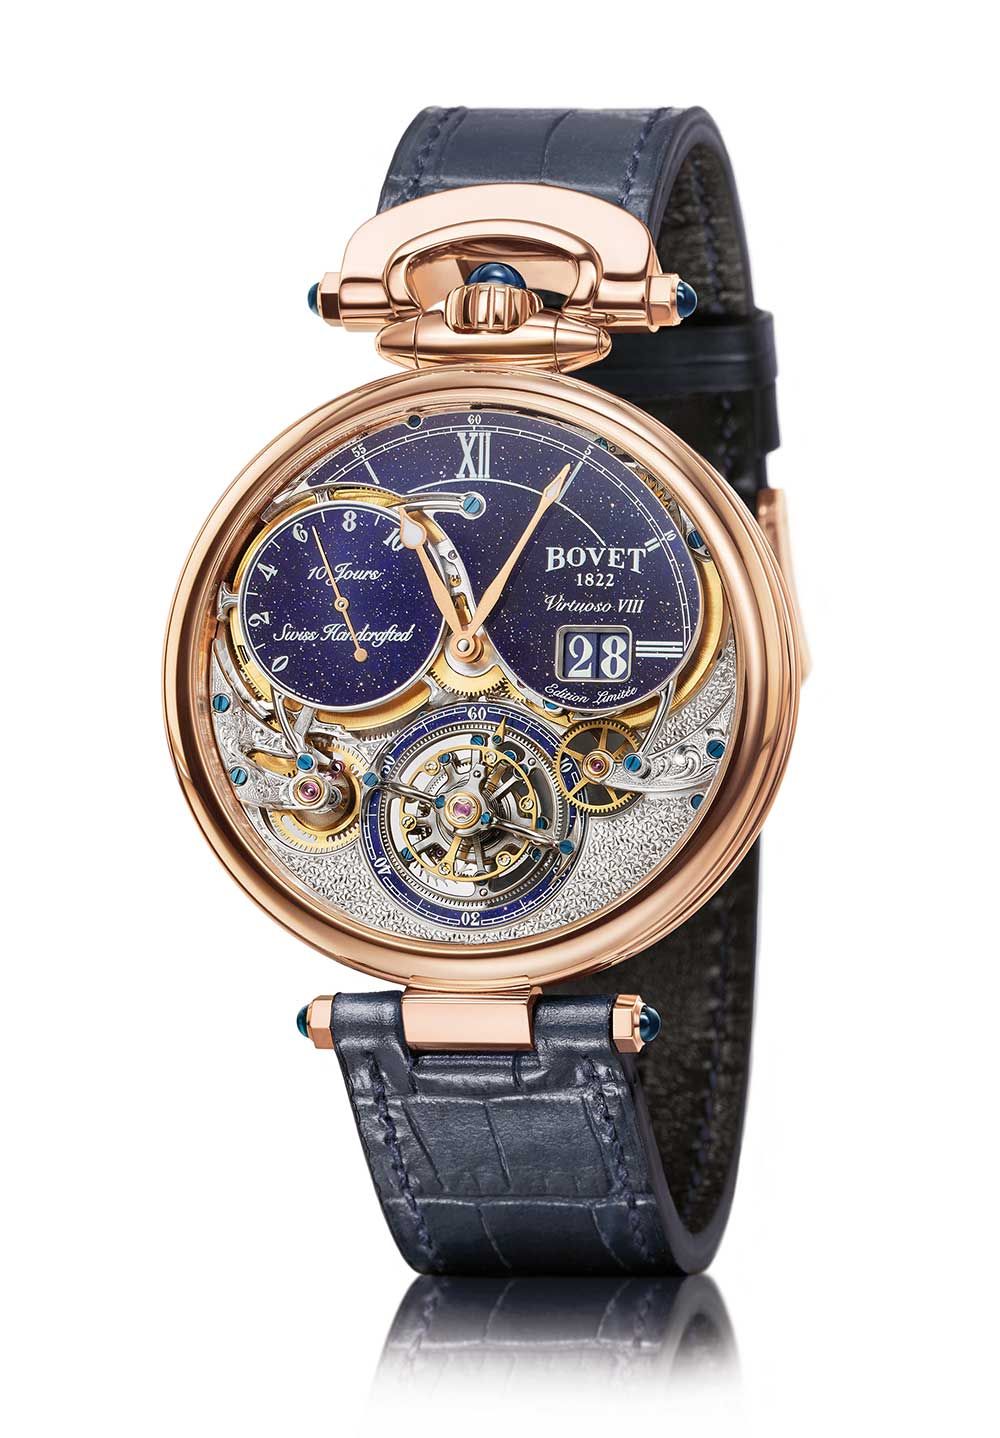 Bovet Virtuoso VIII Flying Tourbillon Big Date aventurine dial